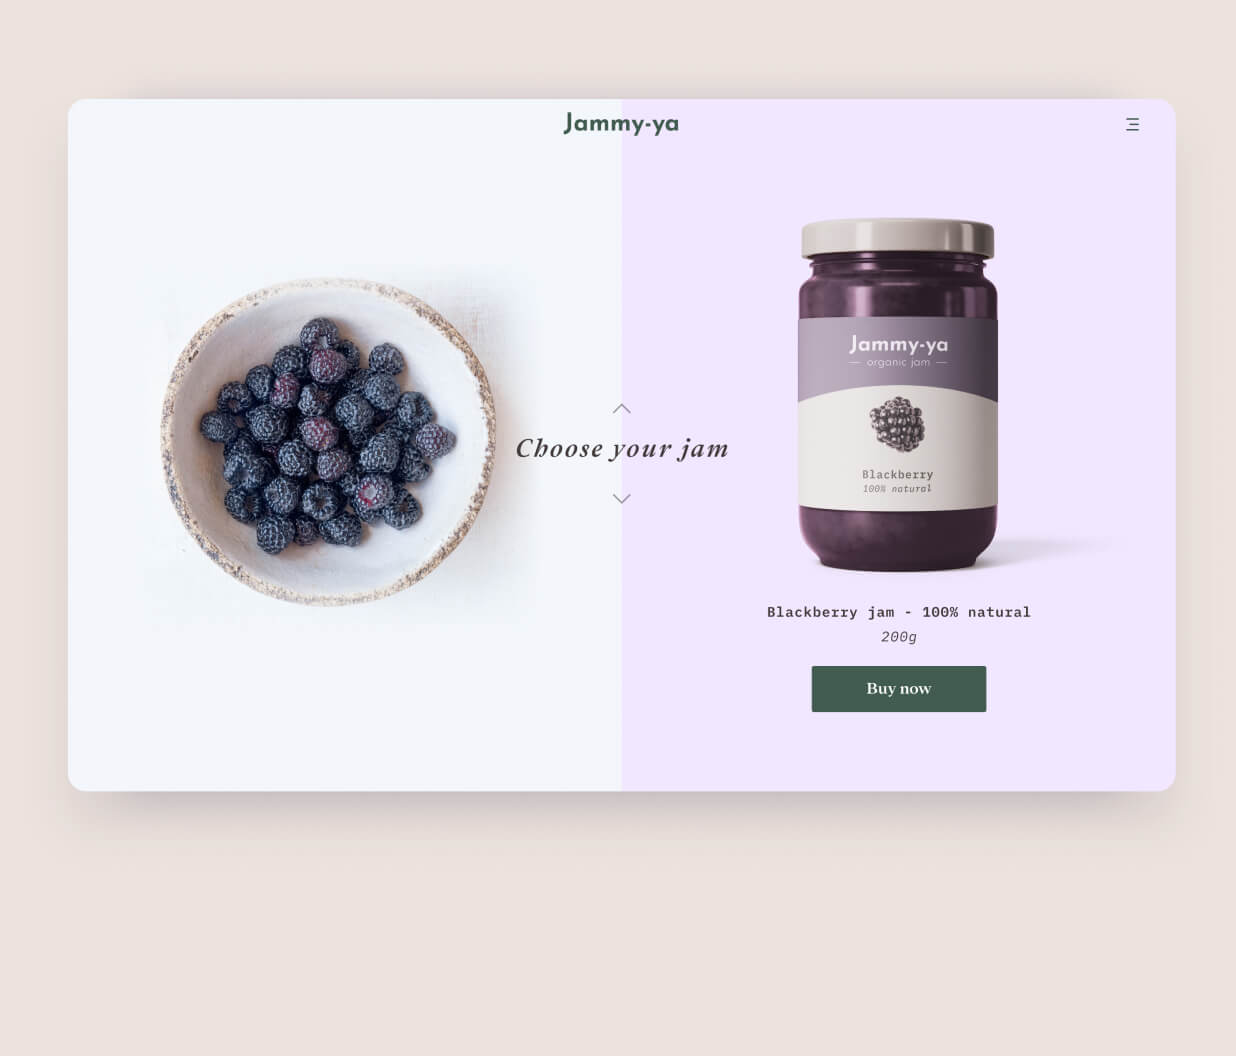 Webpage mockup of organic jam products